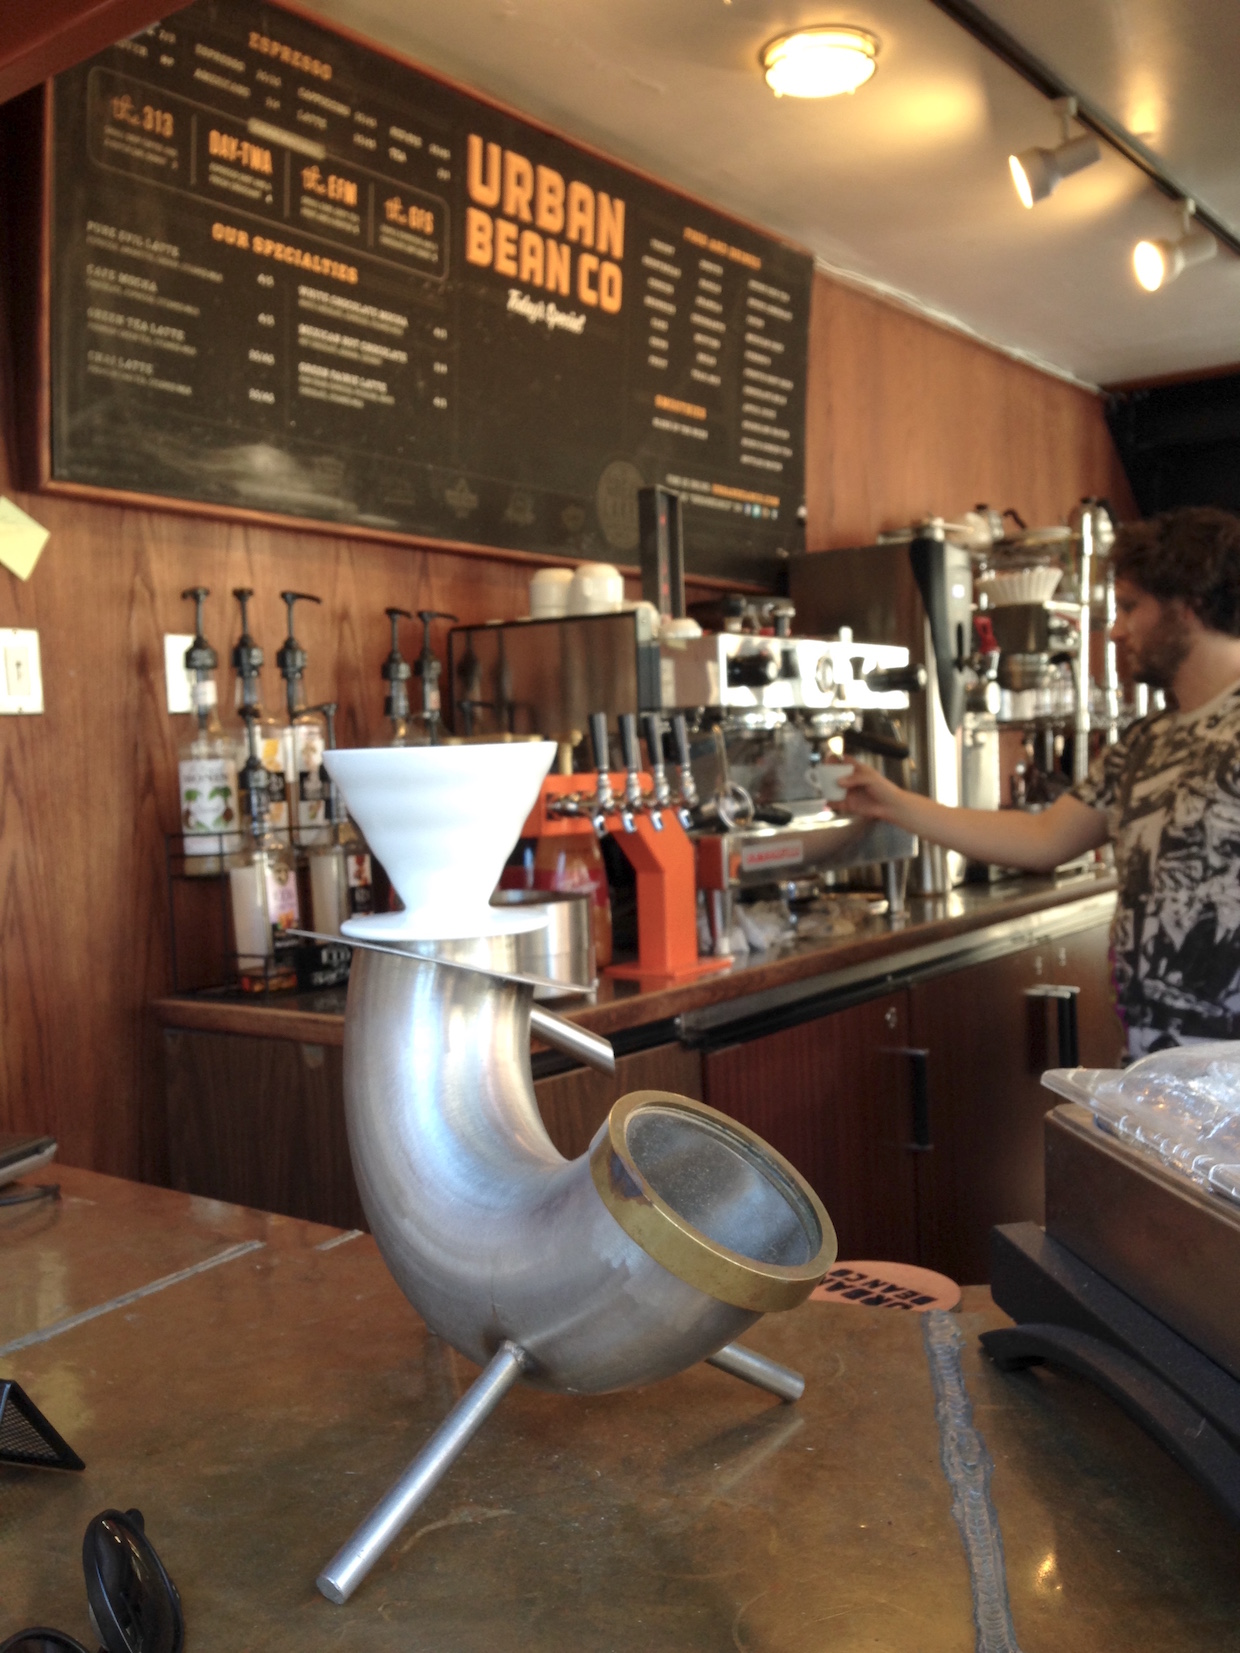 Urban Bean inside – photo credit Craig b